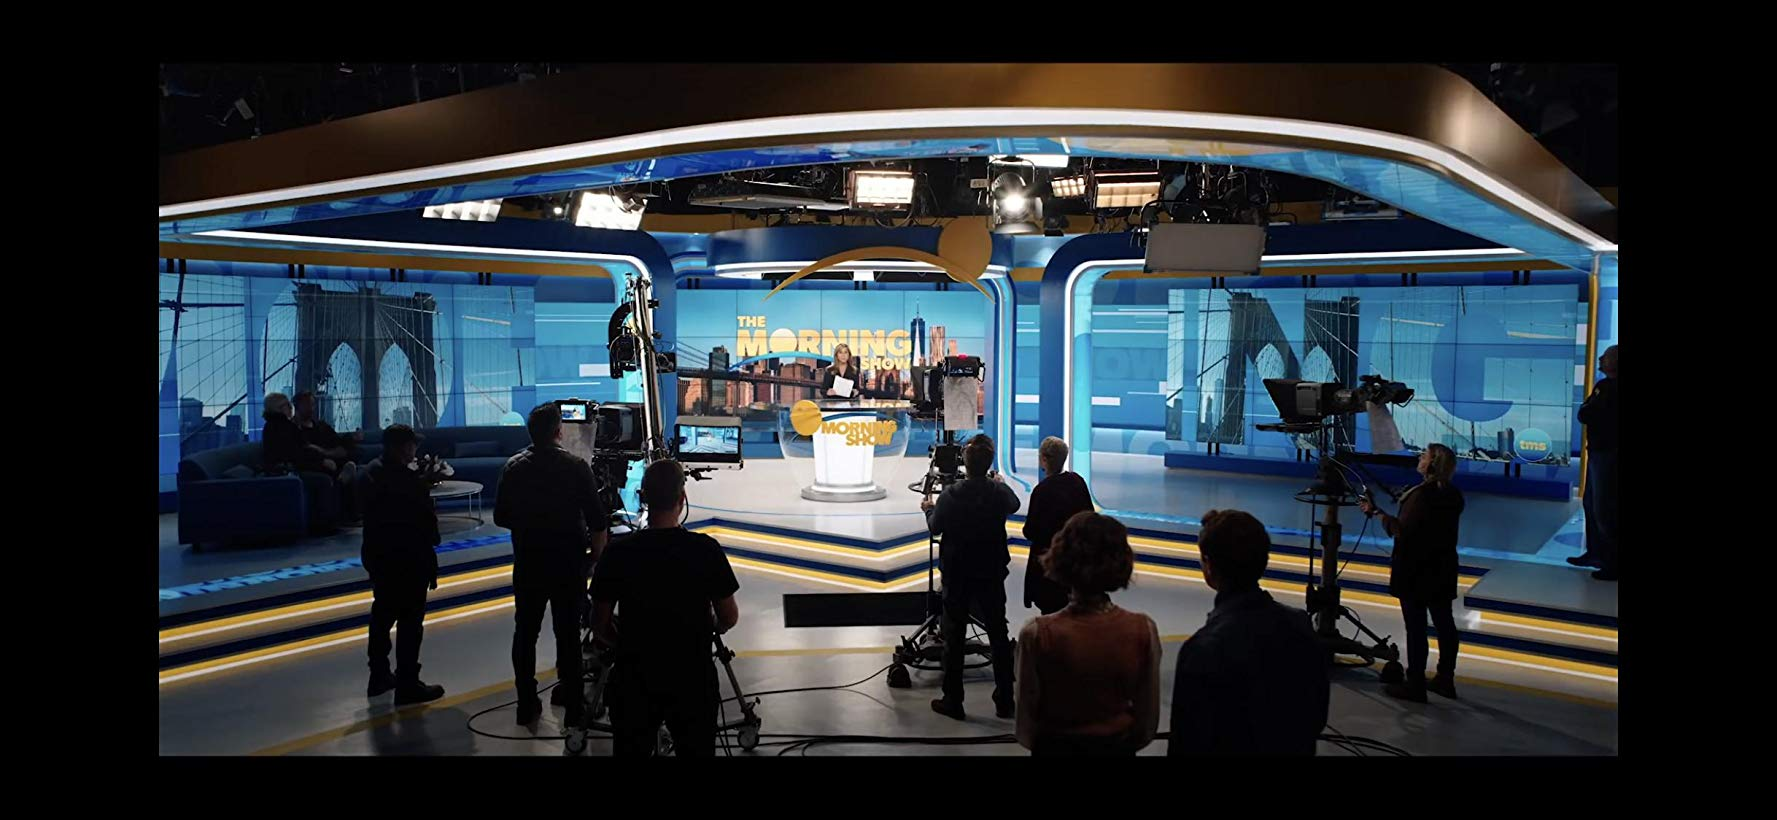 'The Morning Show'